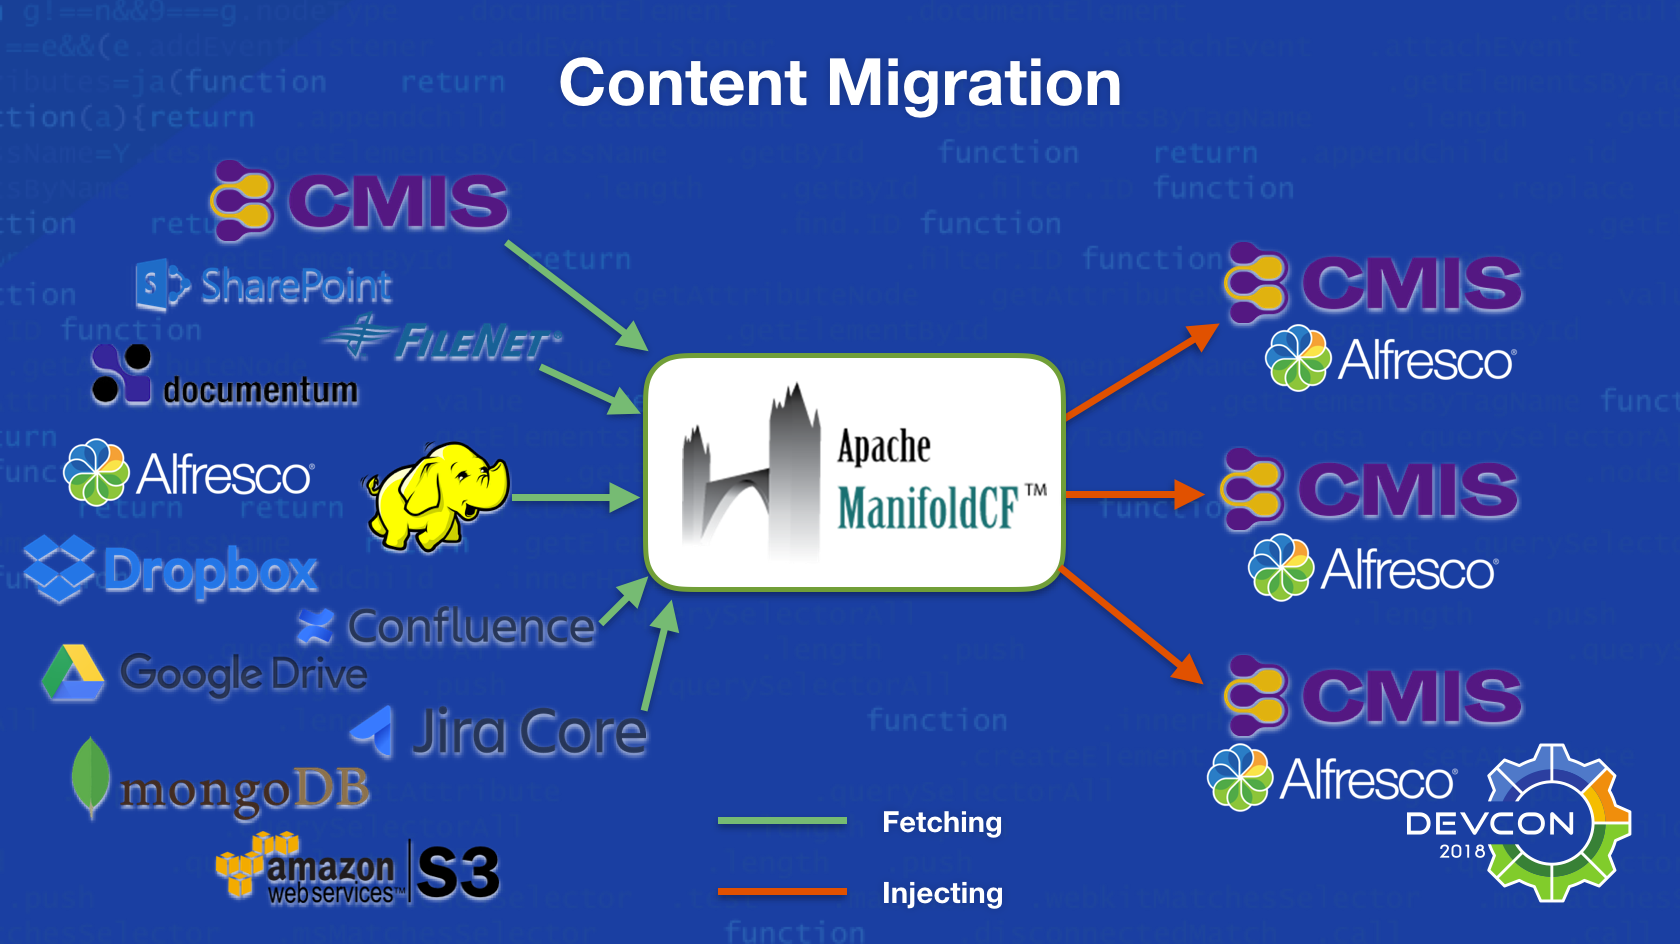 Migration architecture of the new Content Migration included in Apache ManifoldCF